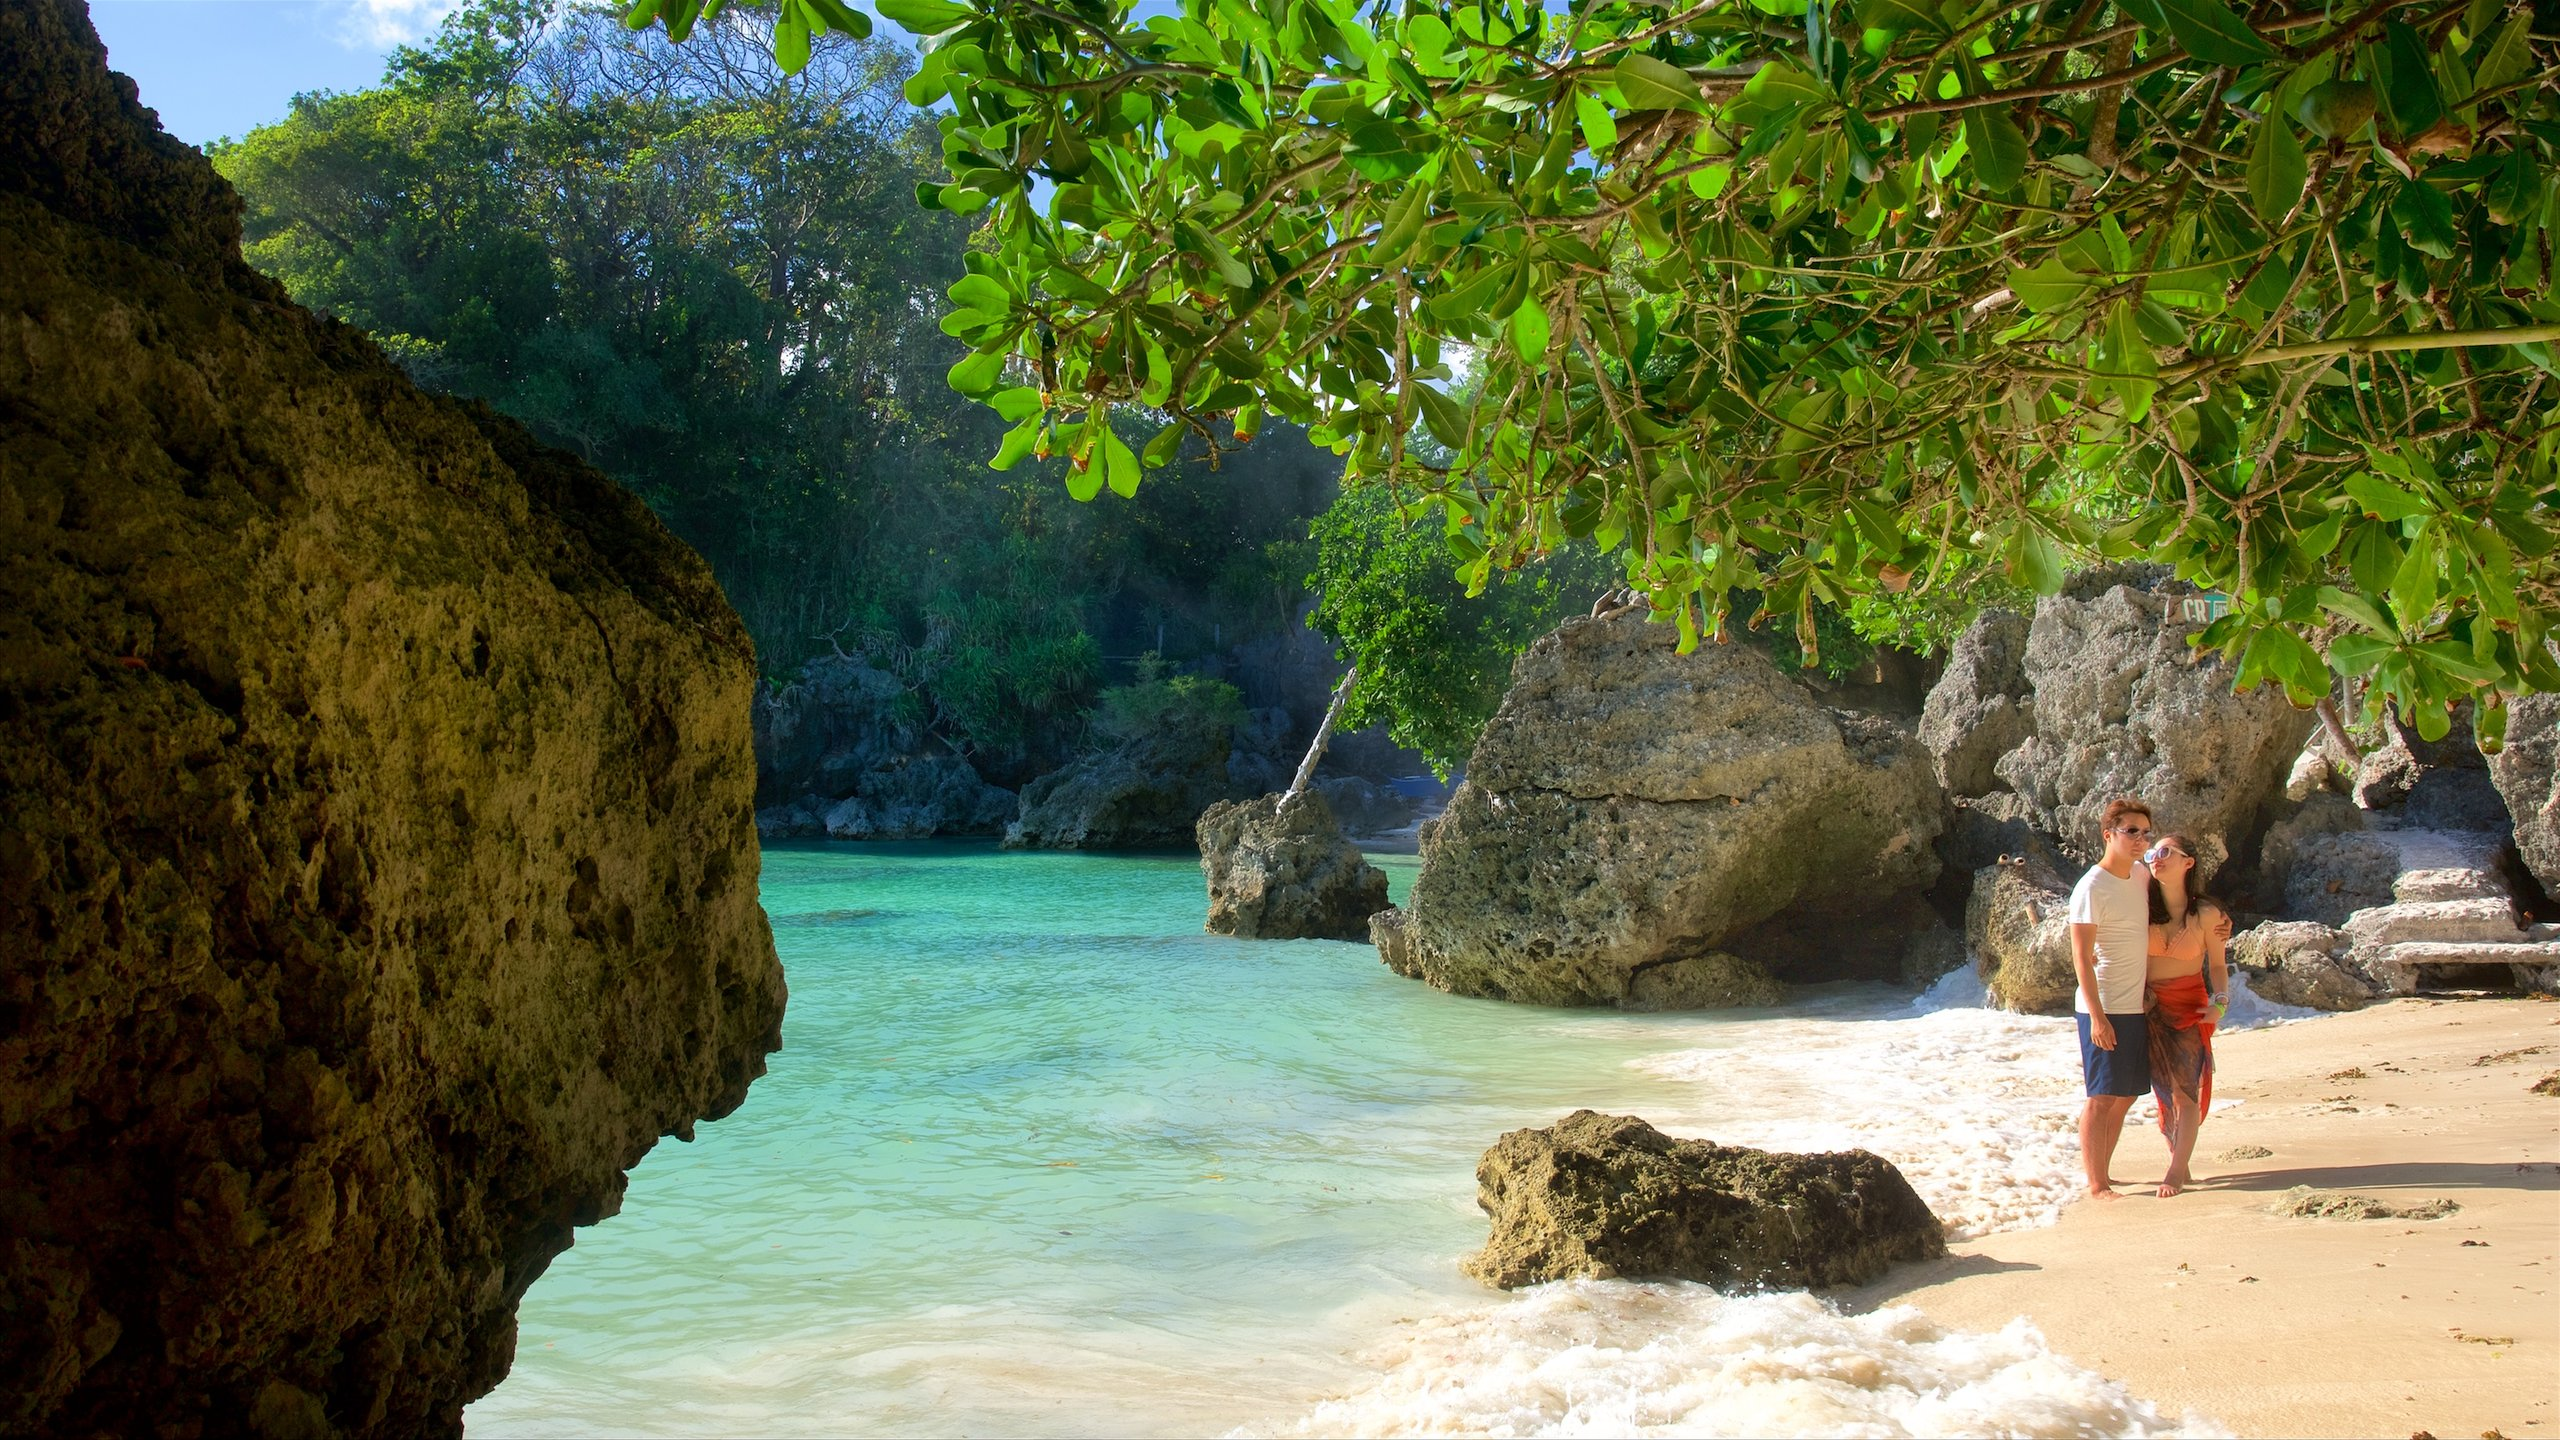 Watersports, scuba diving and dining on the sand are some of the treats in store for visitors to this private beach.